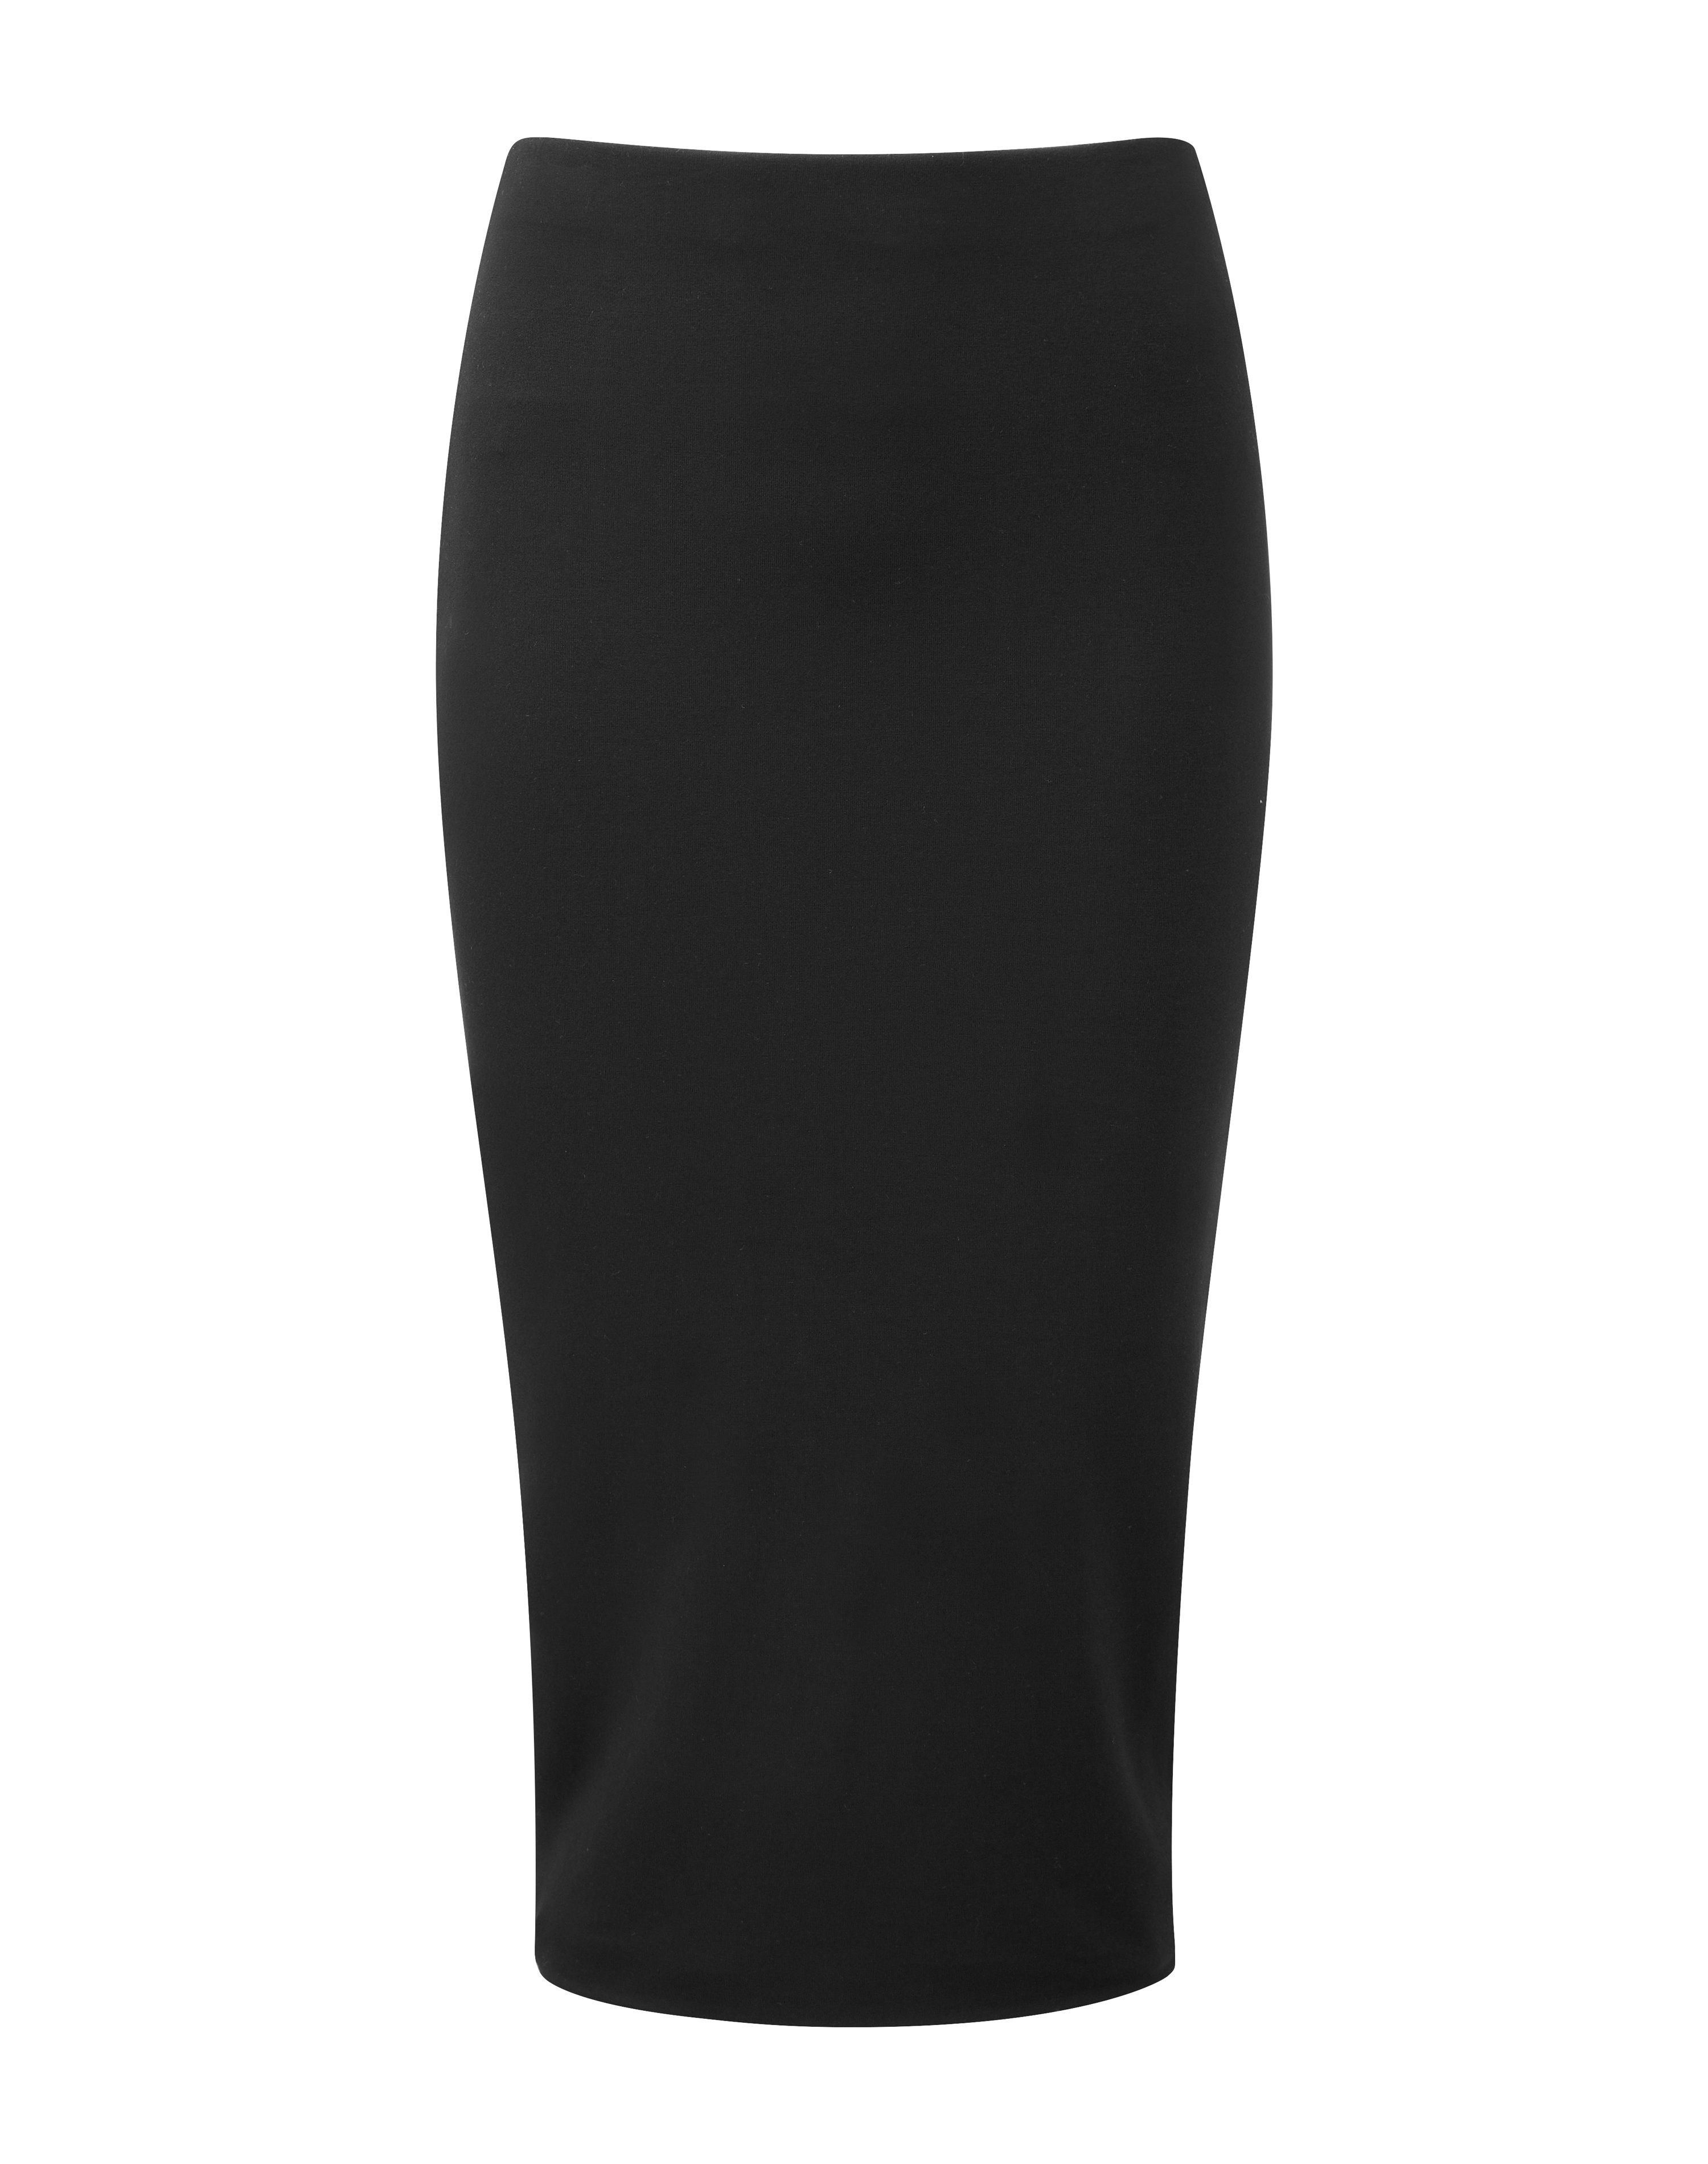 39a2972b7 Shop for Antonio Melani Luxury Collection Leather Aria Skirt at  Dillards.com. Visit Dillards.com to find clothing, accessories, shoes,  cosme…